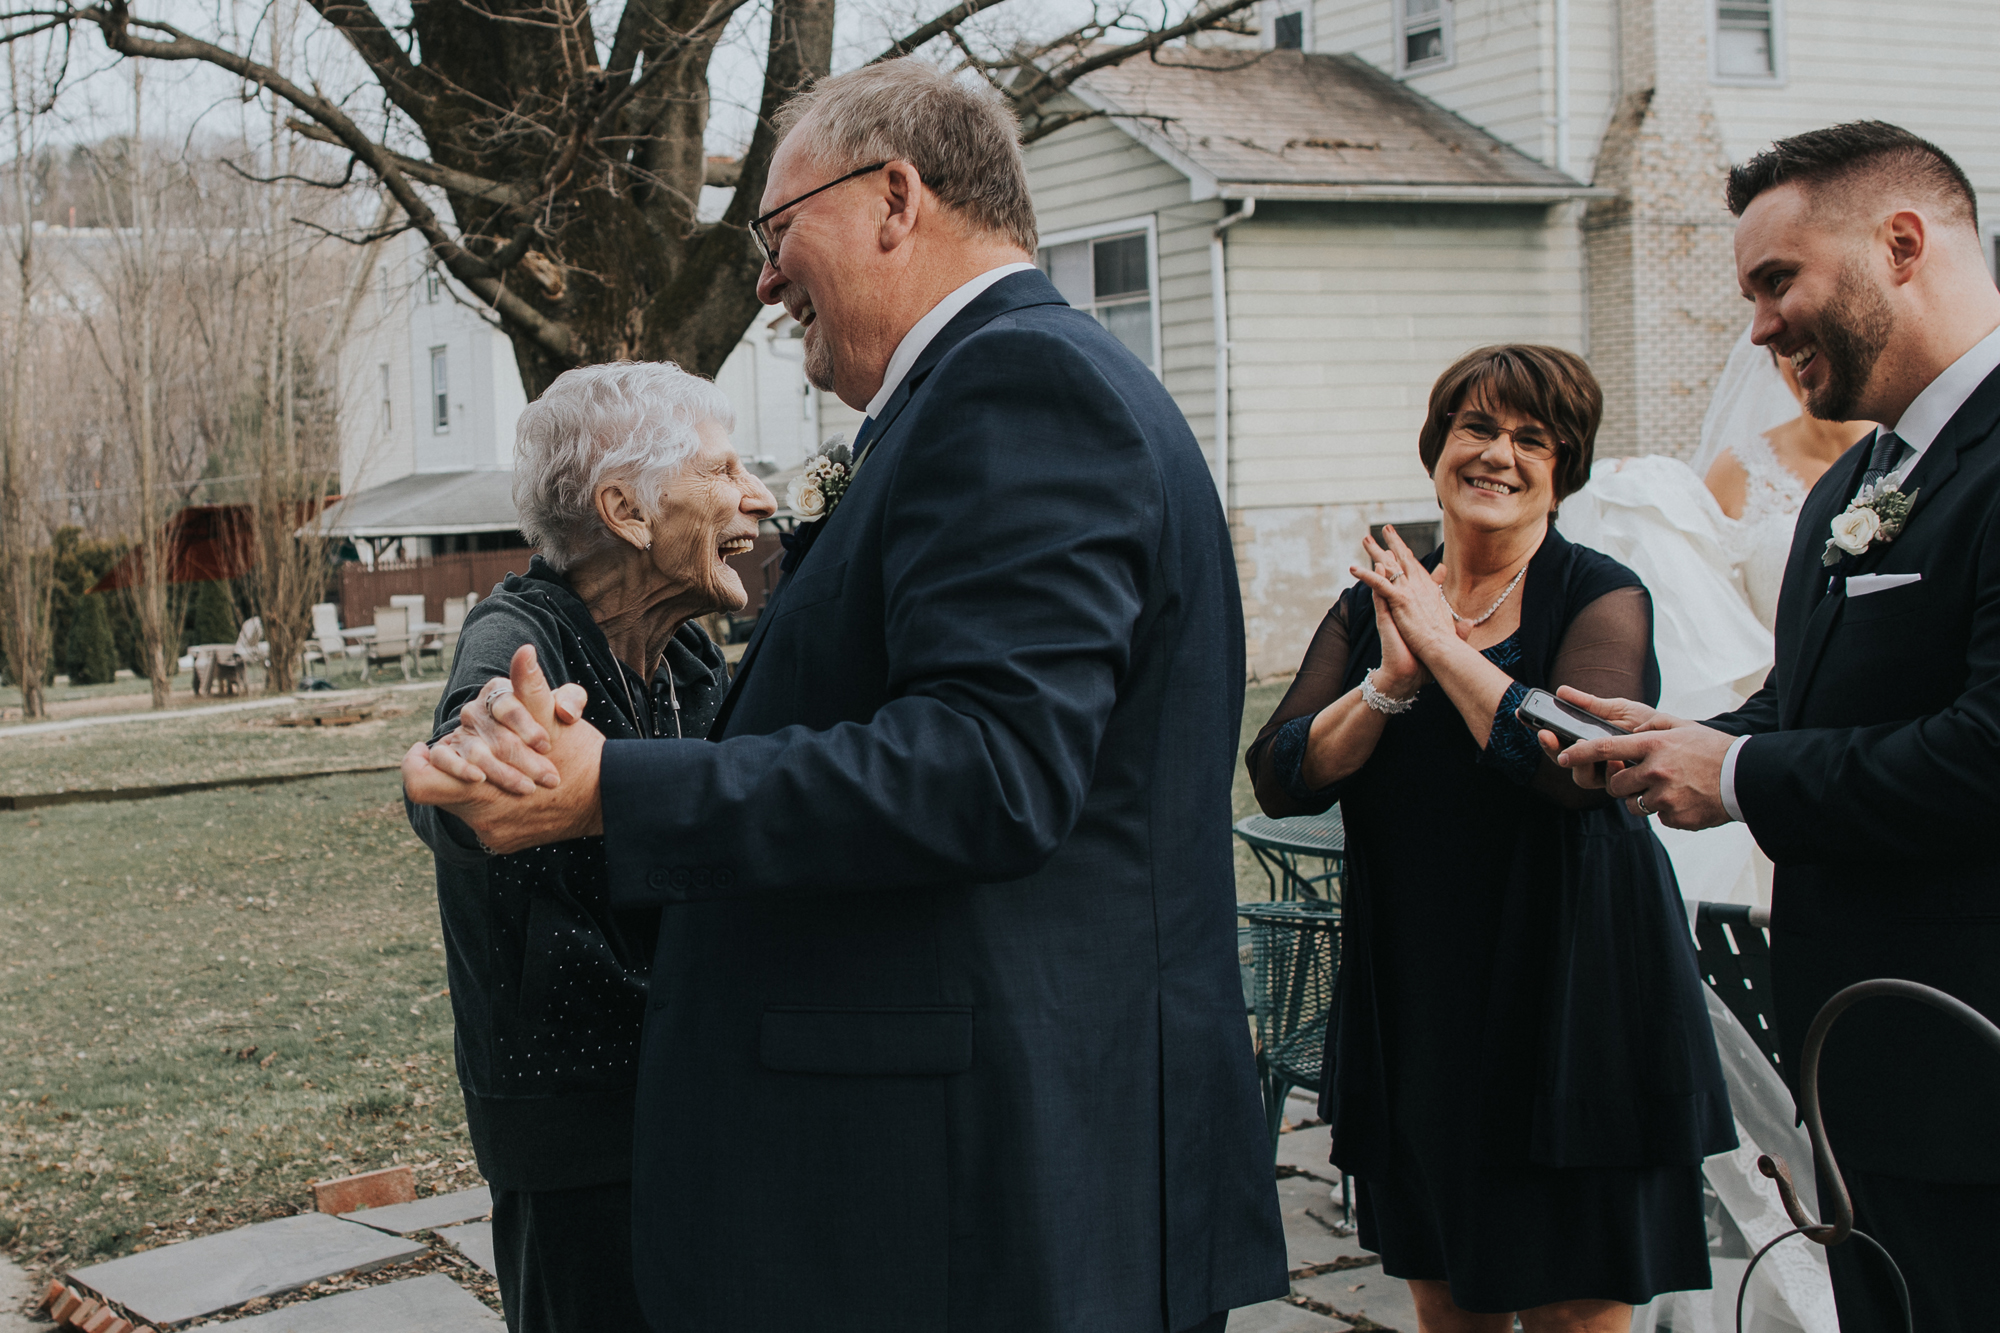 family-candid-photographs-in-pennsylvania-weddings